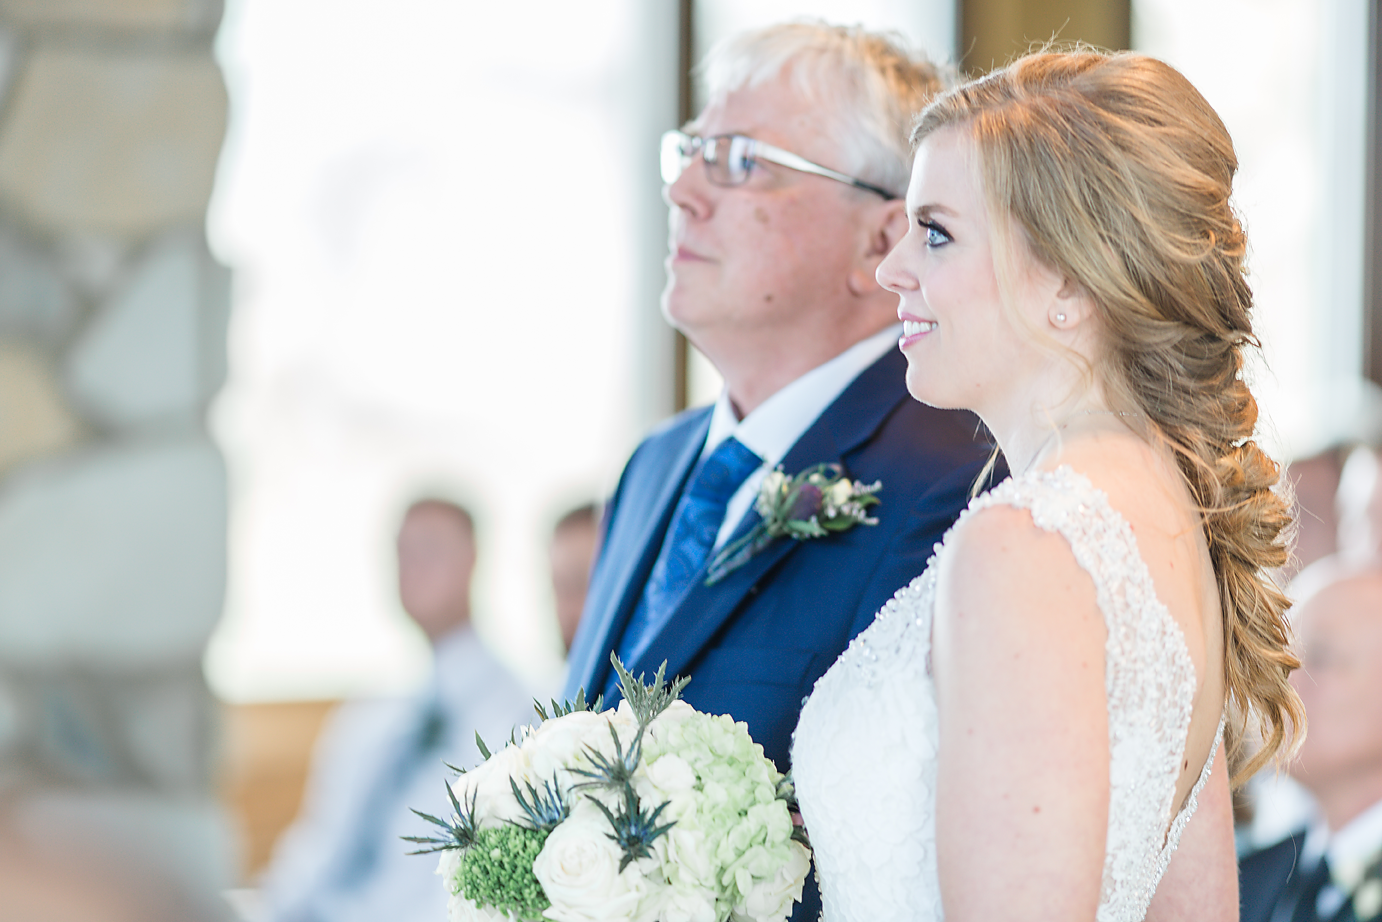 Dallas Wedding Photographer Glassy Mountain Chapel Greenville South Carolina scottish wedding bride and father of the bride ceremony kate marie portraiture.png